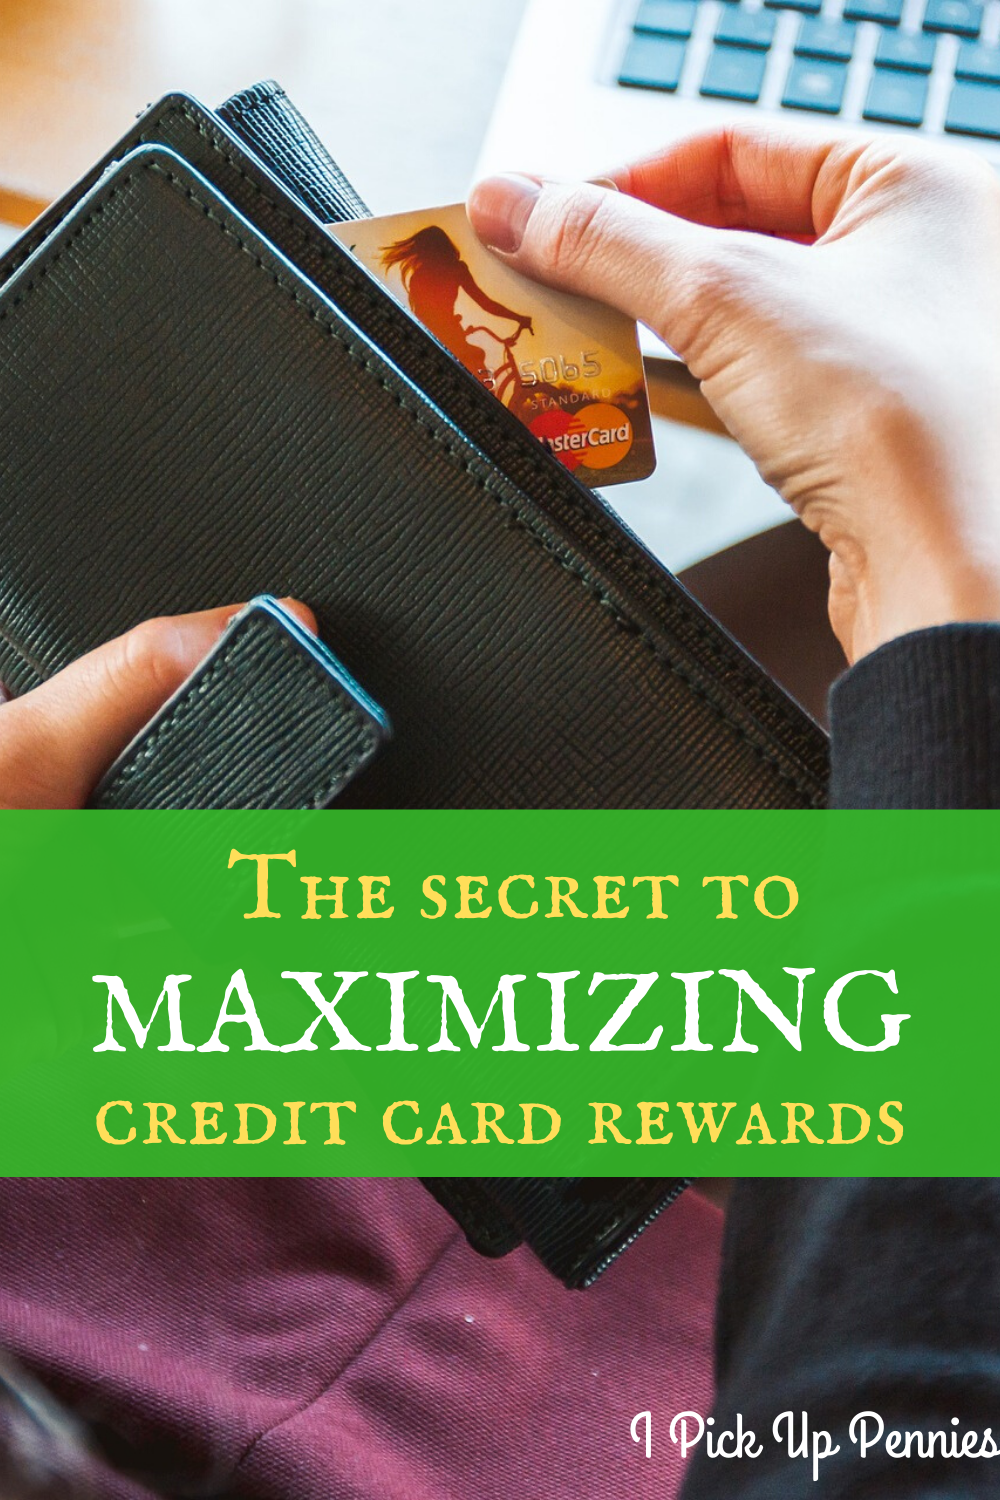 Great idea for getting the most out of your credit card rewards!